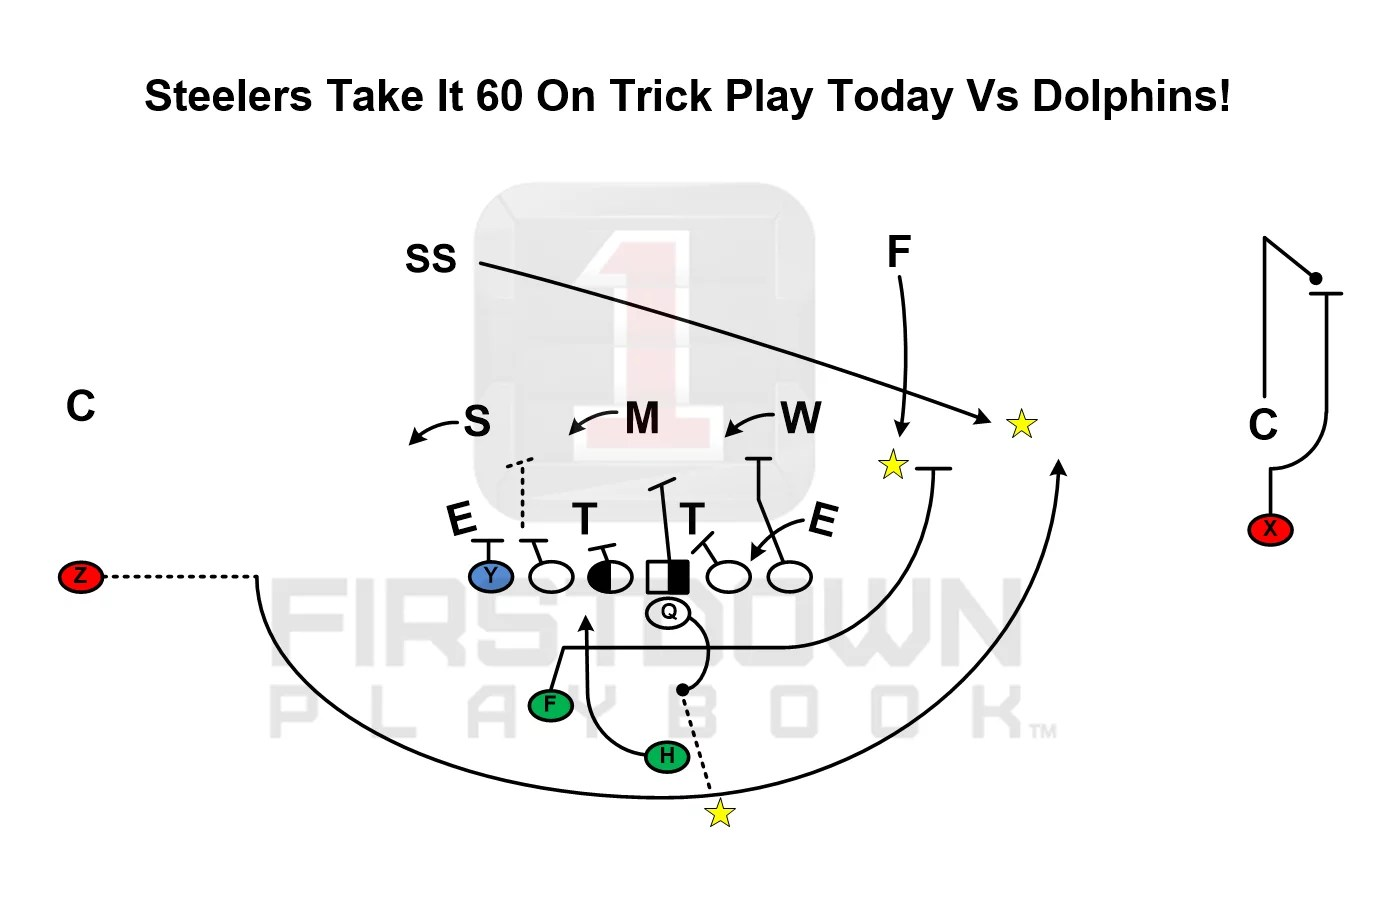 Steelers Took This Trick Play 60 Yards Just Now